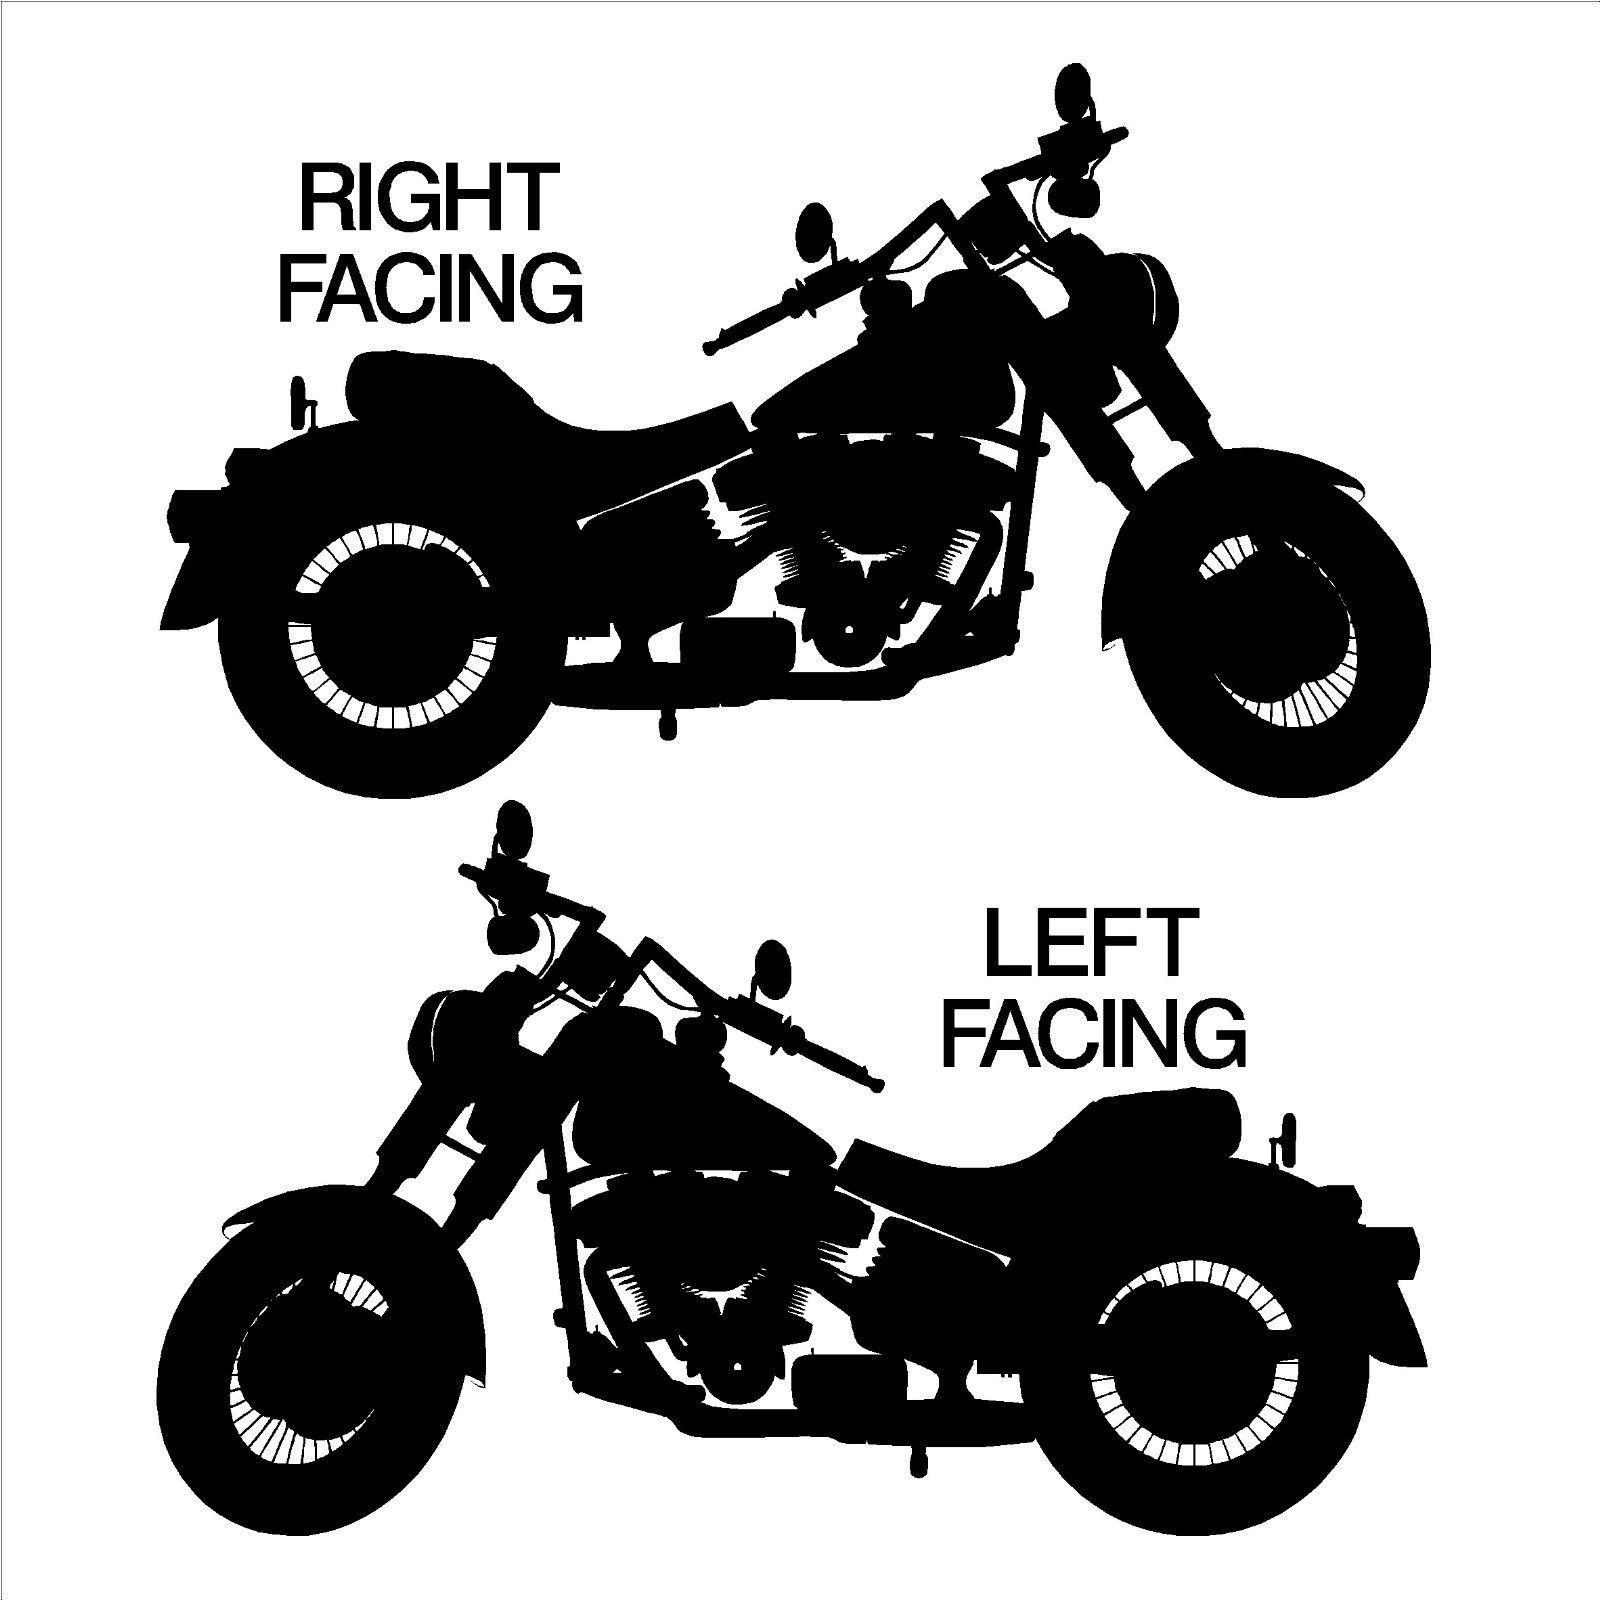 HARLEY DAVIDSON MOTORBIKE CHOPPER Vinyl Wall Art Sticker Decal - Stickers for motorcycles harley davidsonsmotorcycle decals and stickers